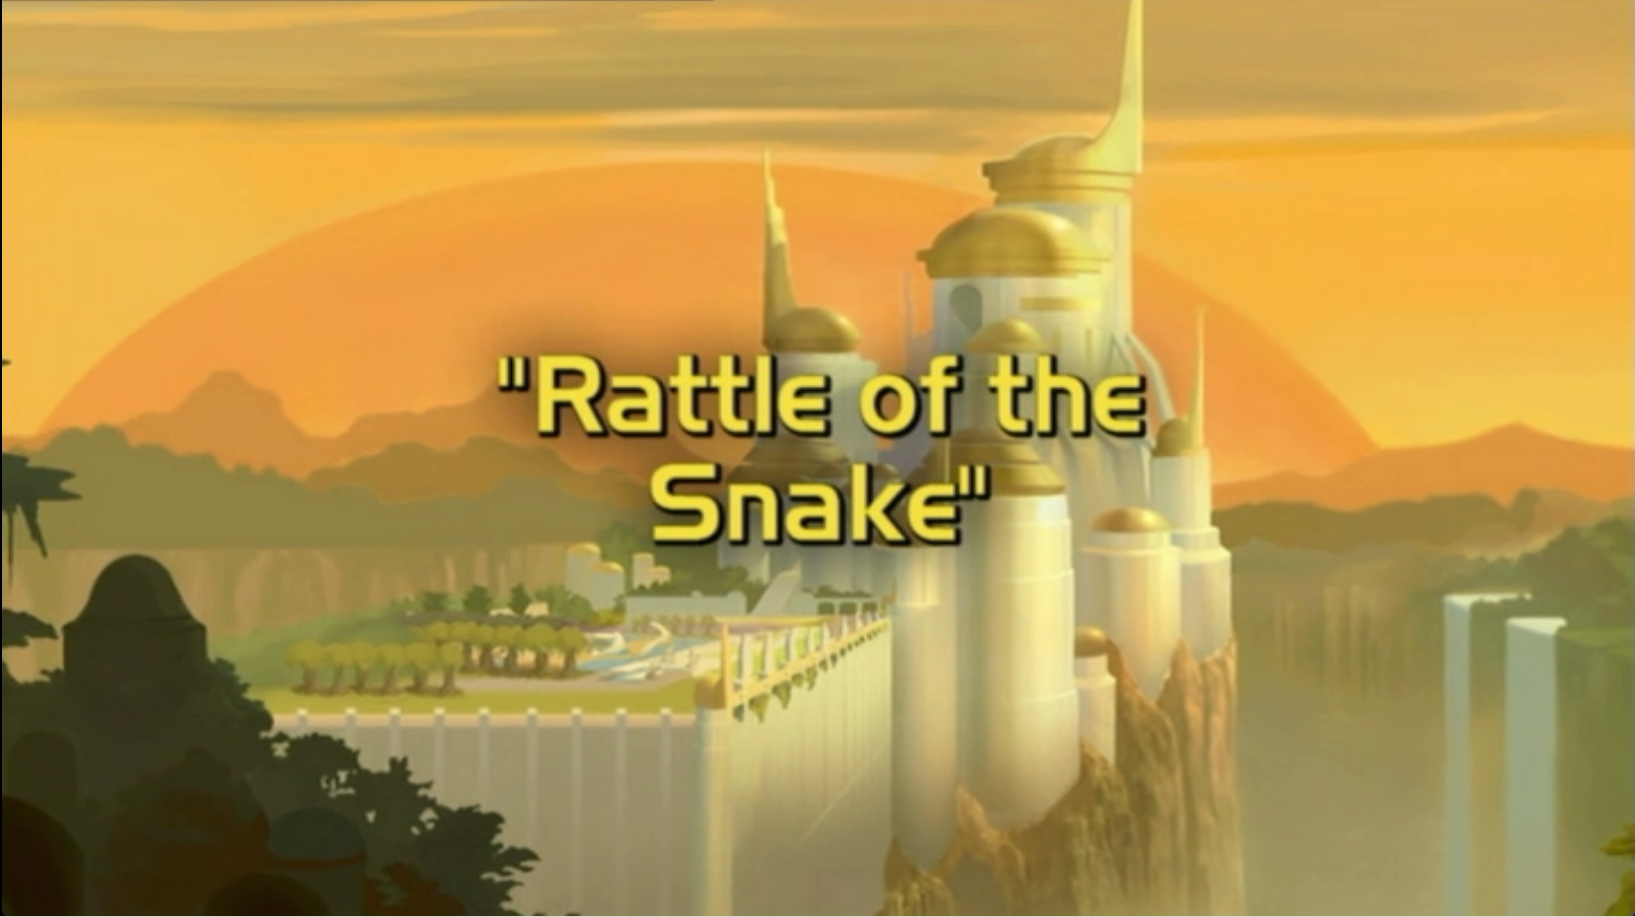 Rattle of the Snake